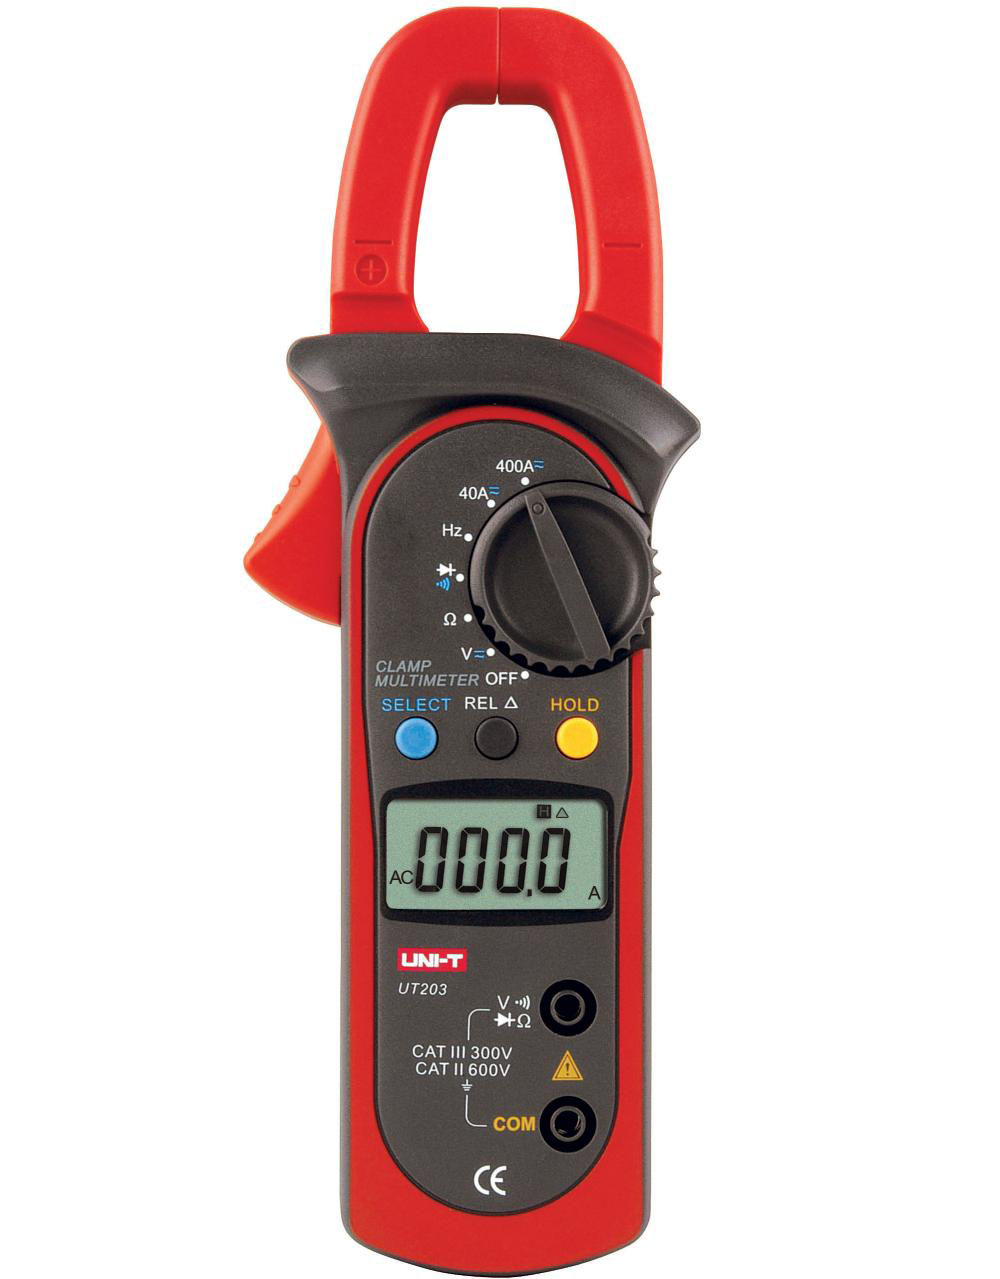 UNI-T UT203 - Digital Clamp Meters 400A; 400mV-600V